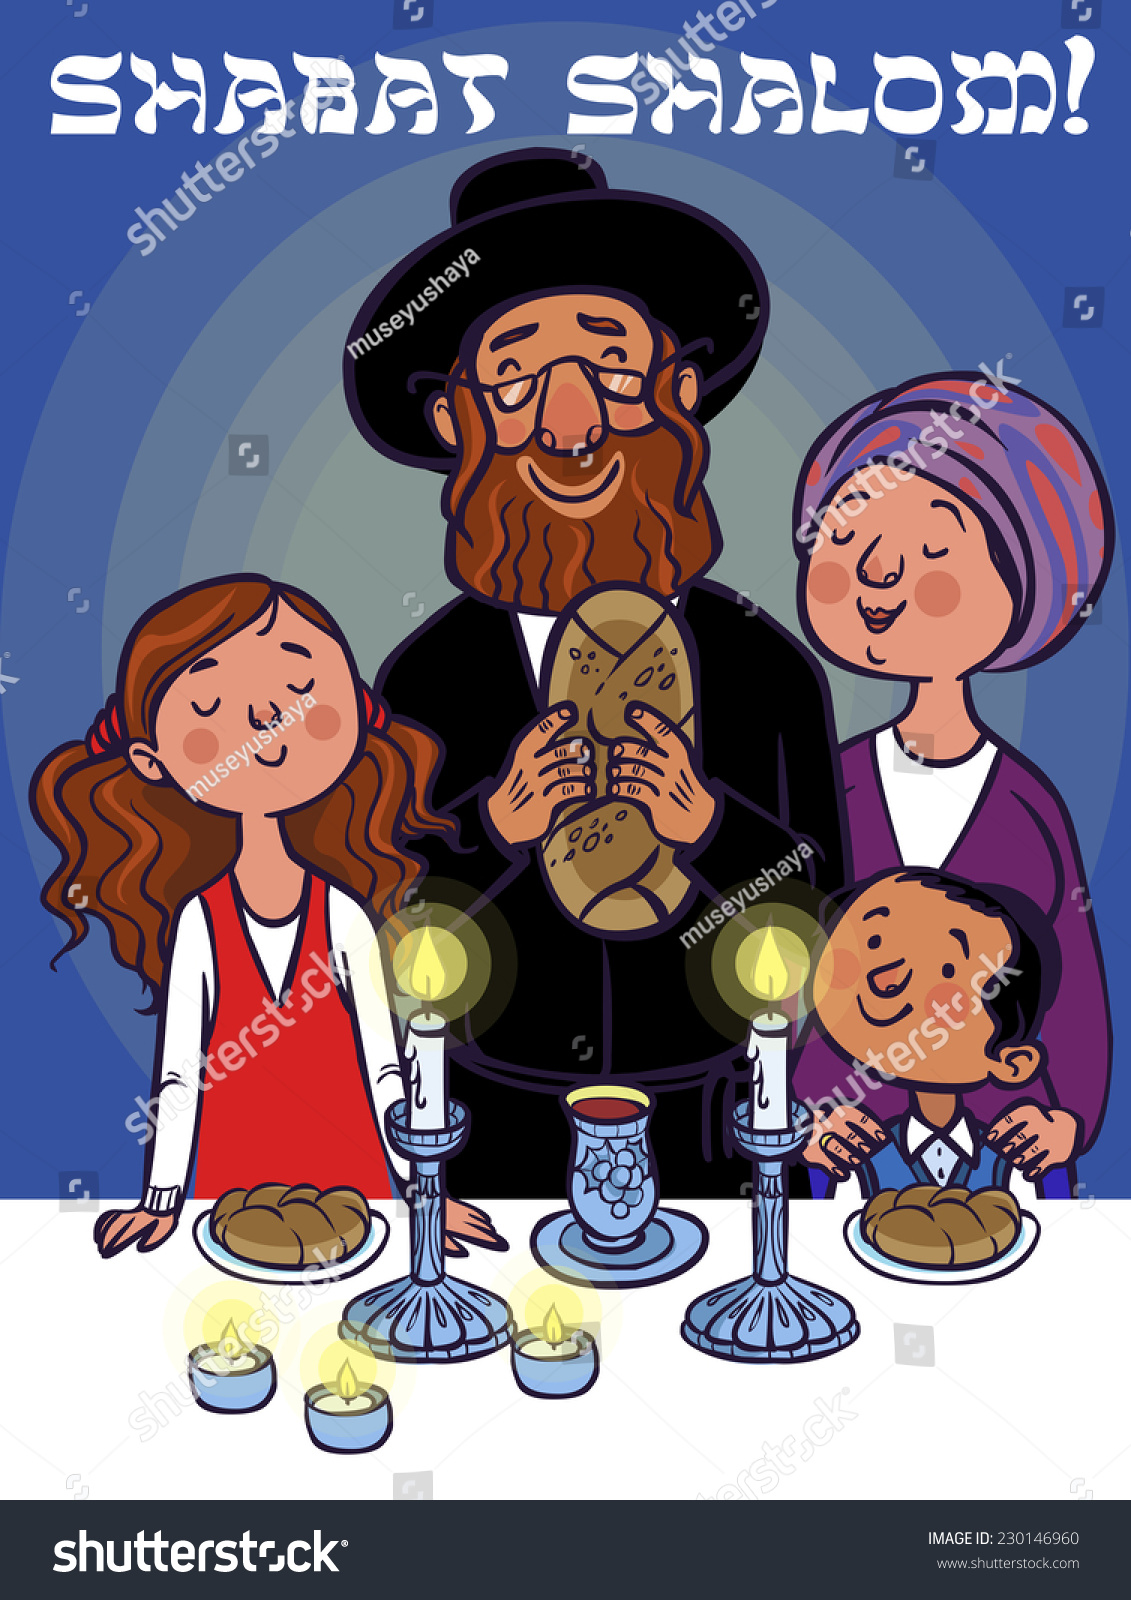 Image result for family celebrating shabbat